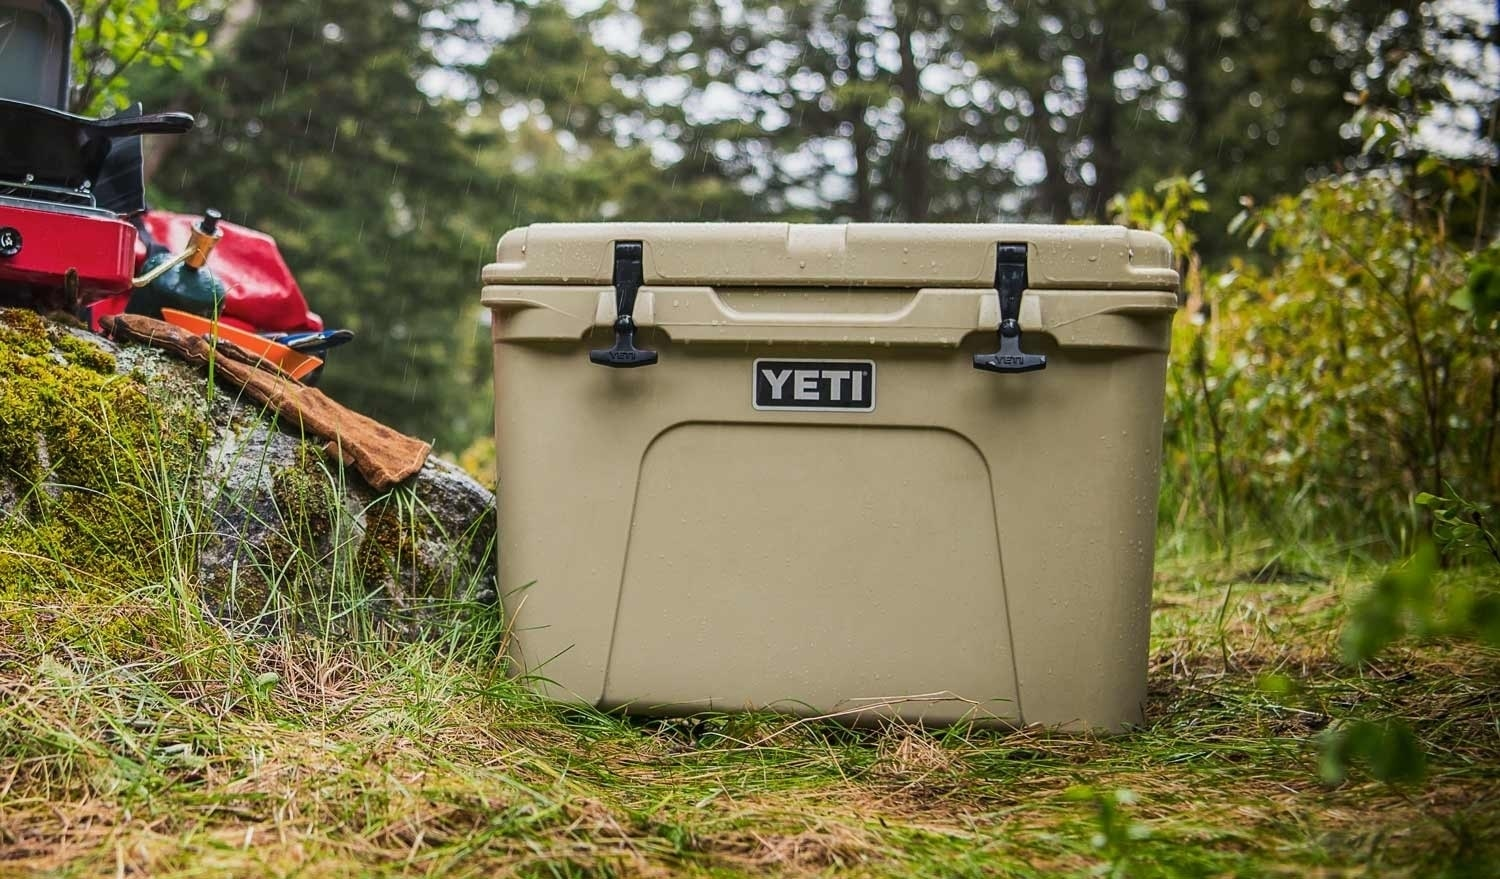 Best Yeti Coolers Reviewed